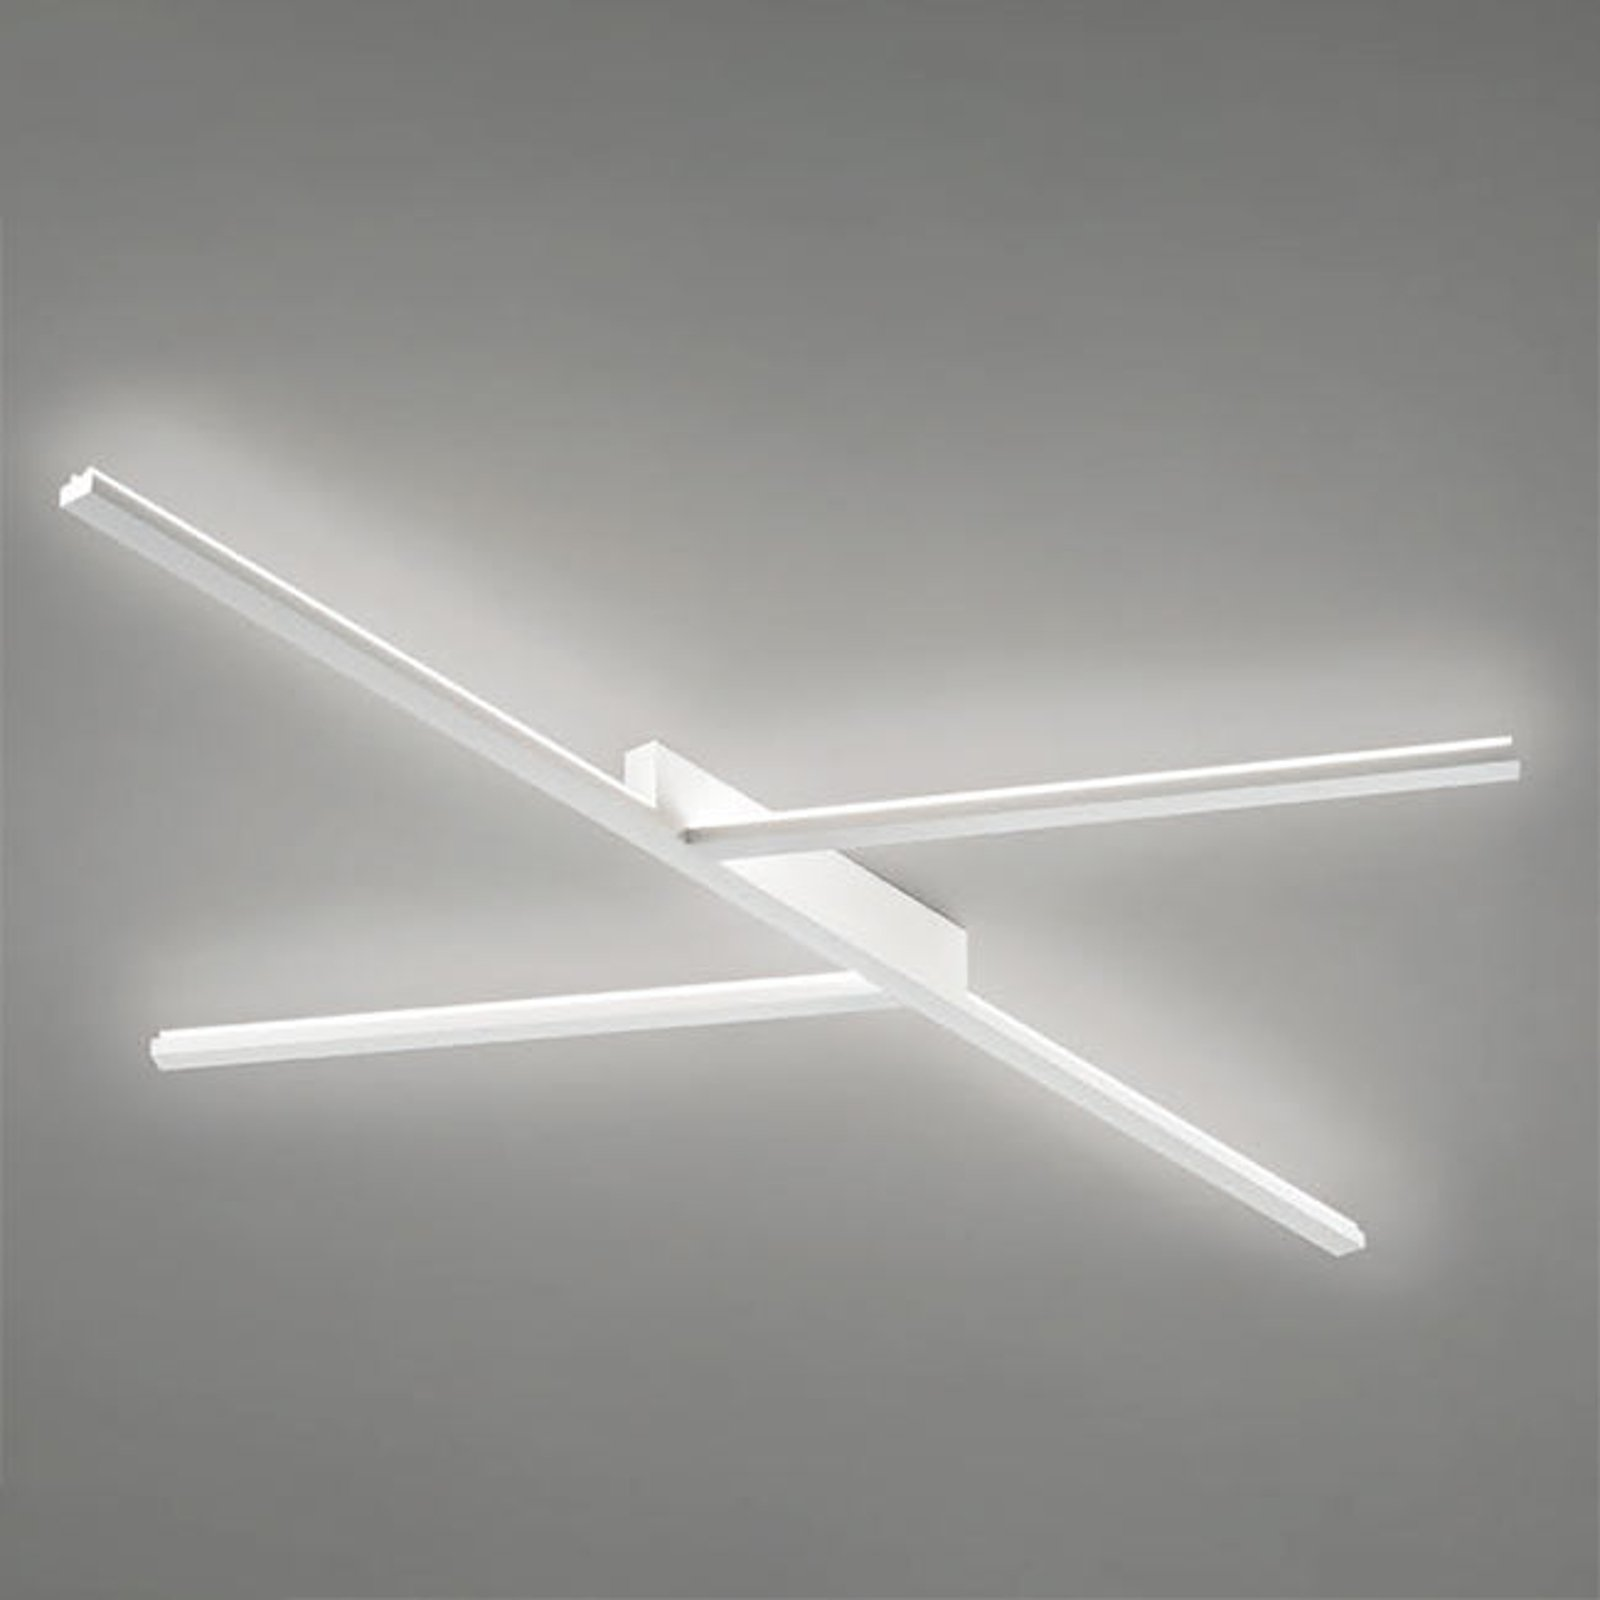 Xilema S puristisk LED-taklampe